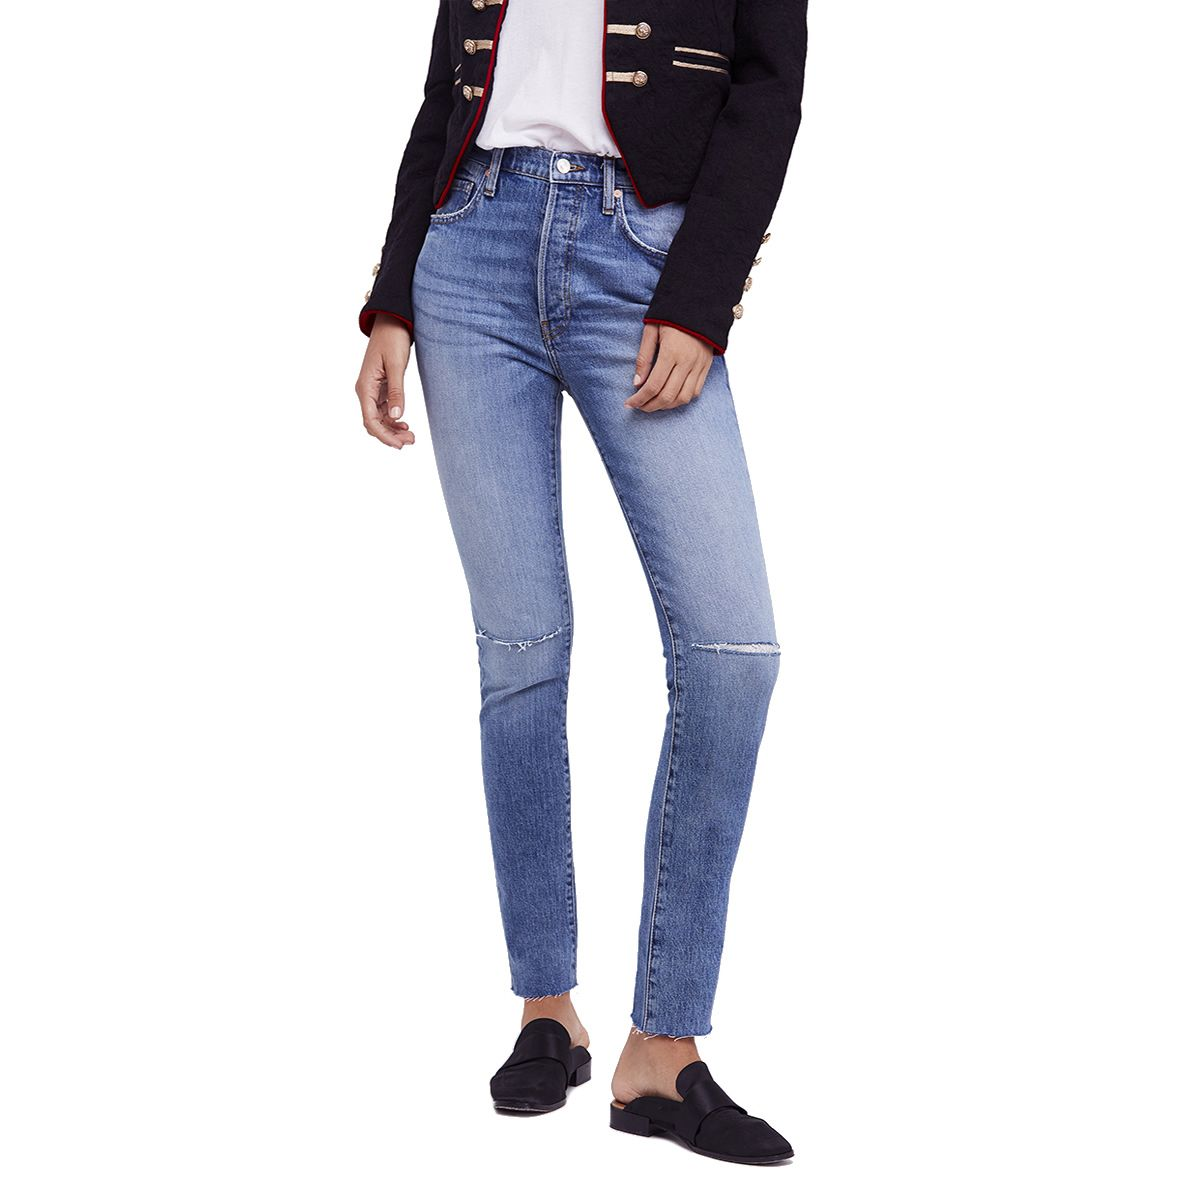 0c5bd80d5e2bc Free People Jeans For Women - Macy s